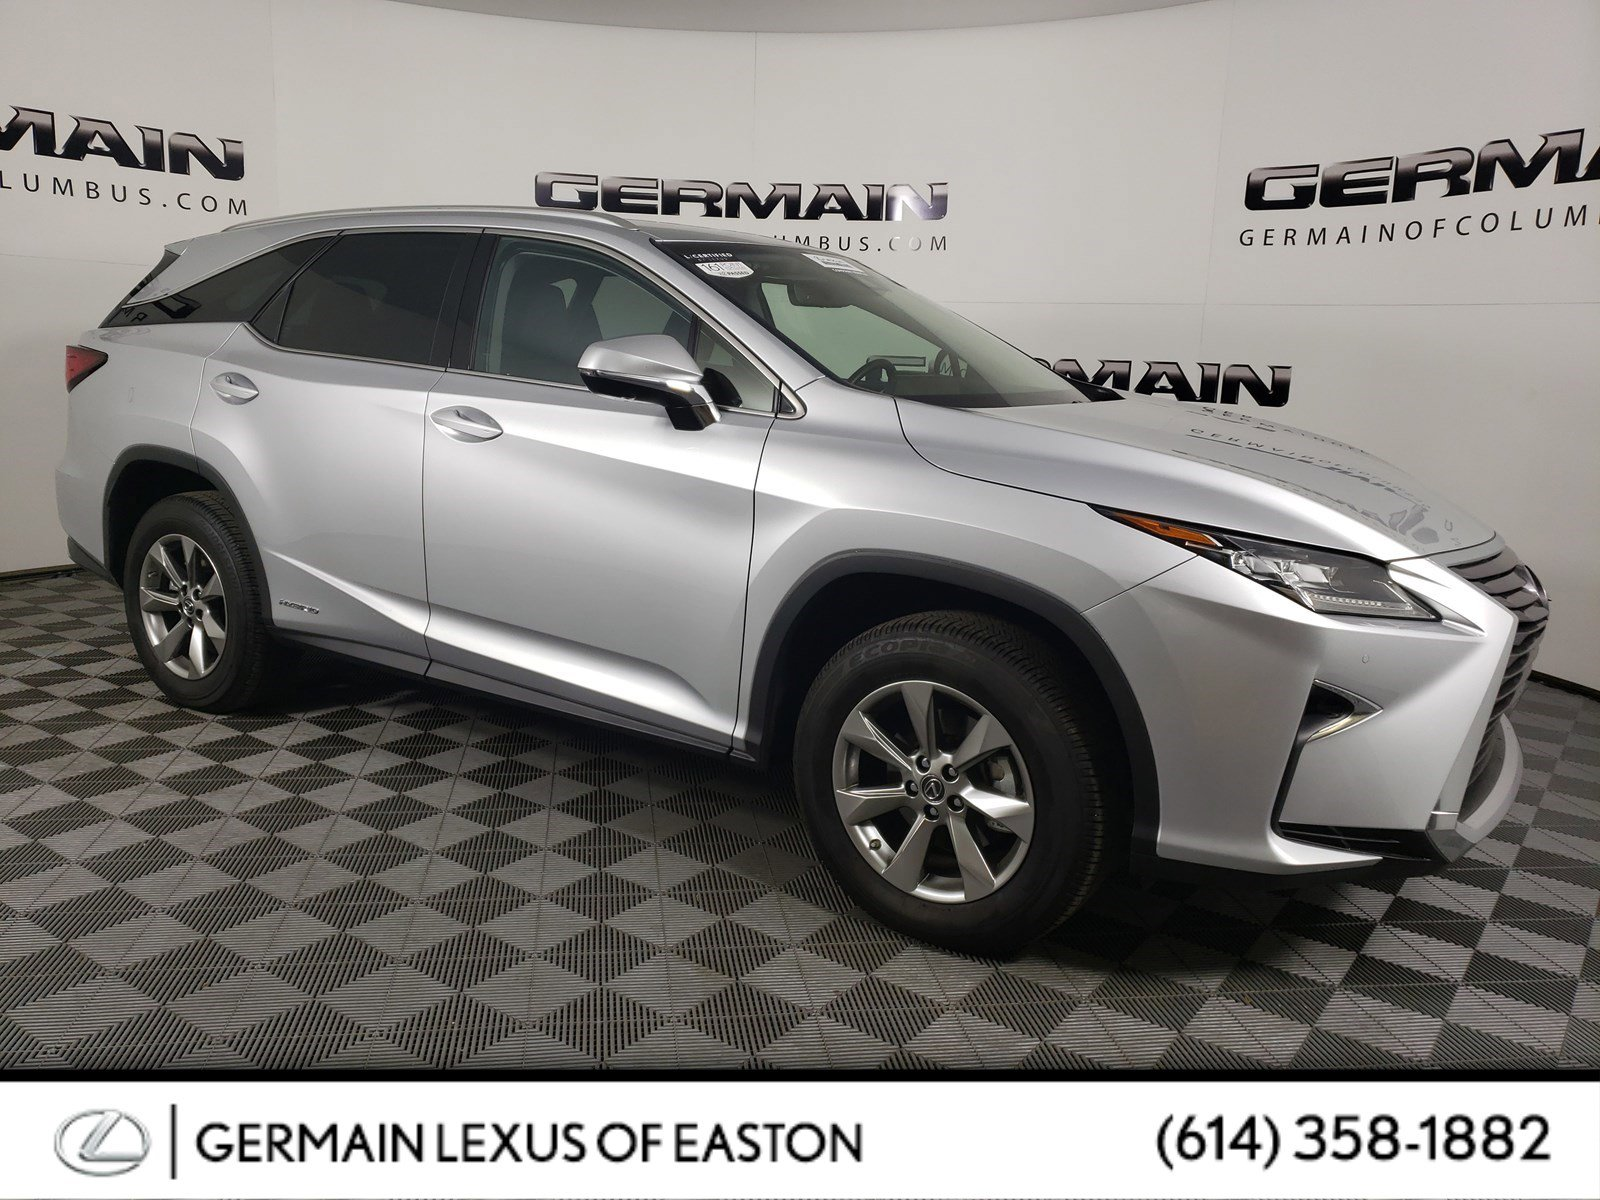 Certified Pre-Owned 2019 Lexus RX 450hL